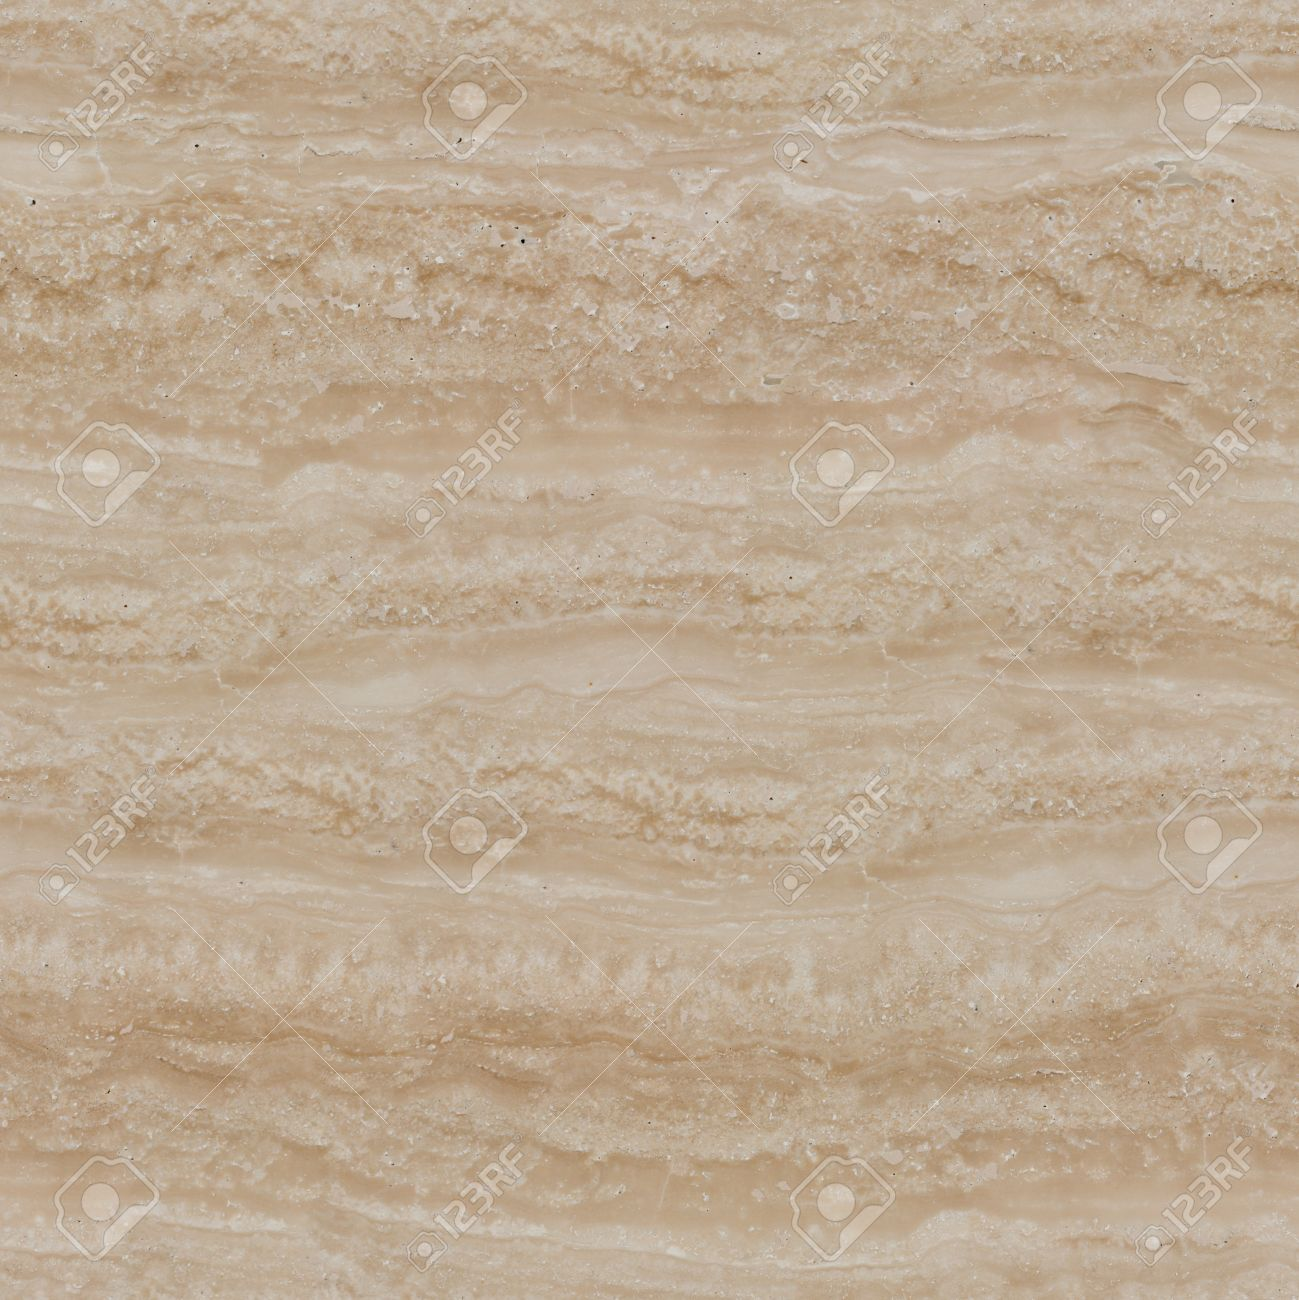 Beige Marble Travertine Texture Seamless Square Background Tile Ready High Resolution Photo